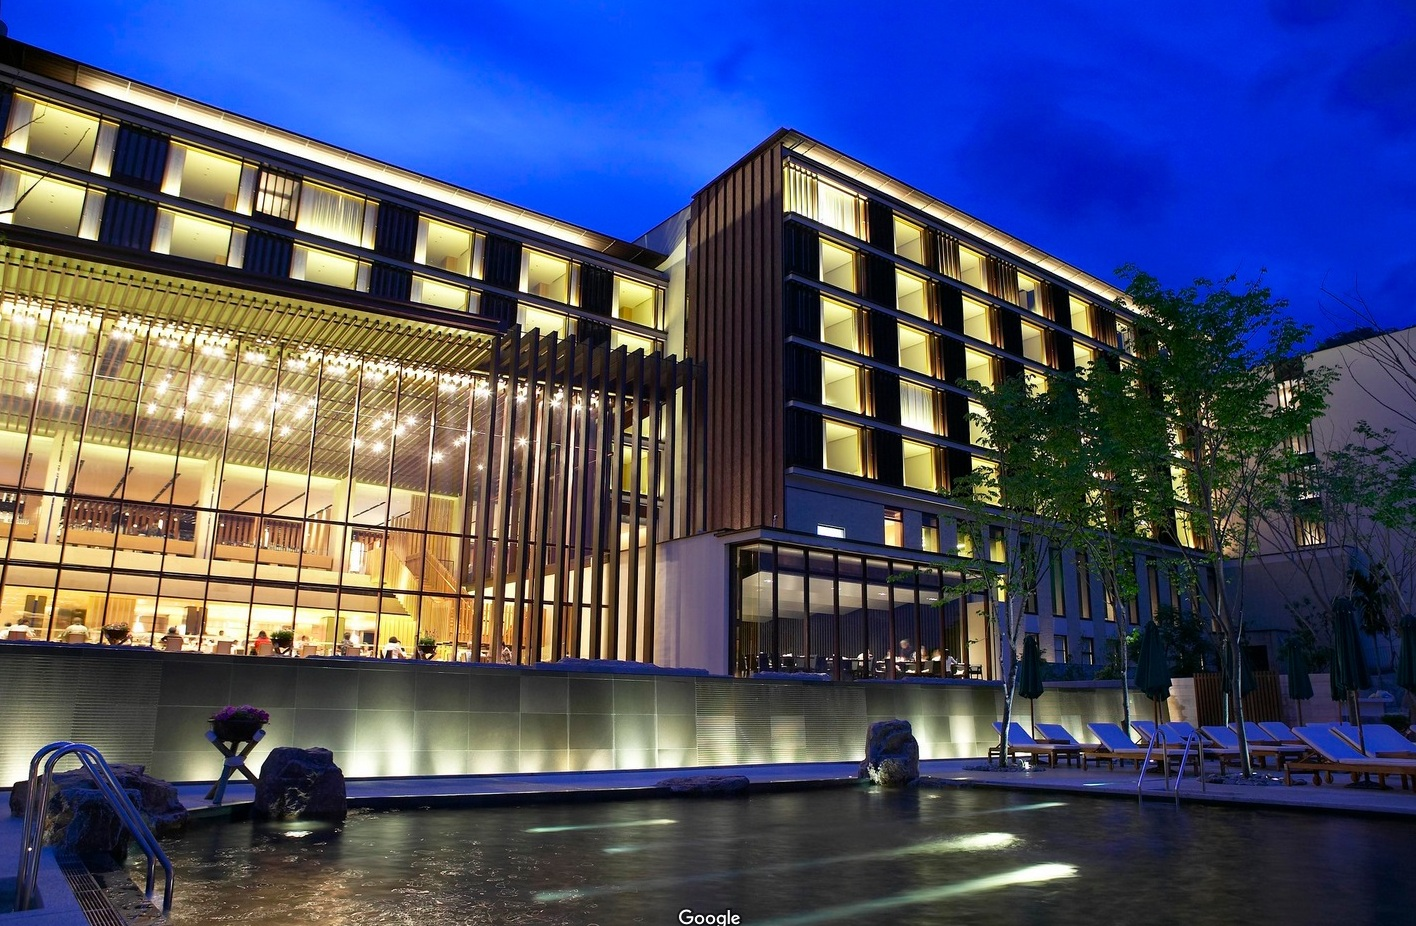 Hotel Royal Chiao Hsi (5 Star) - Ji